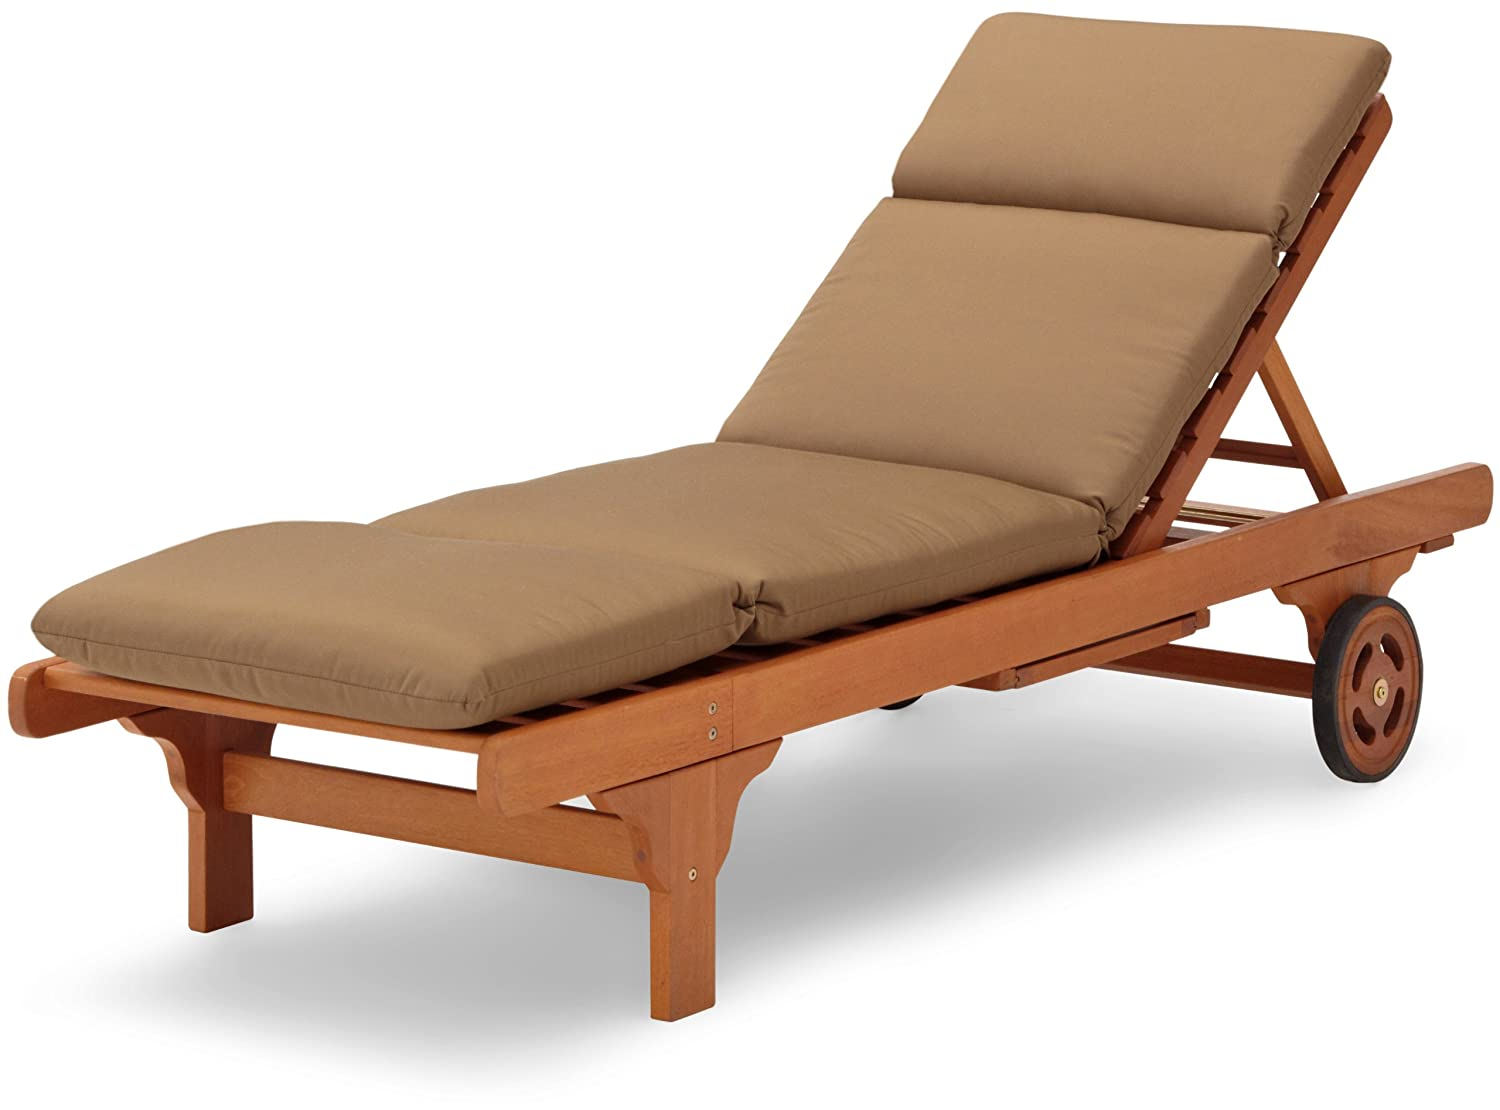 Hardwood chaise lounge sunbrella cushion reverse acrylic for Acrylic chaise lounge